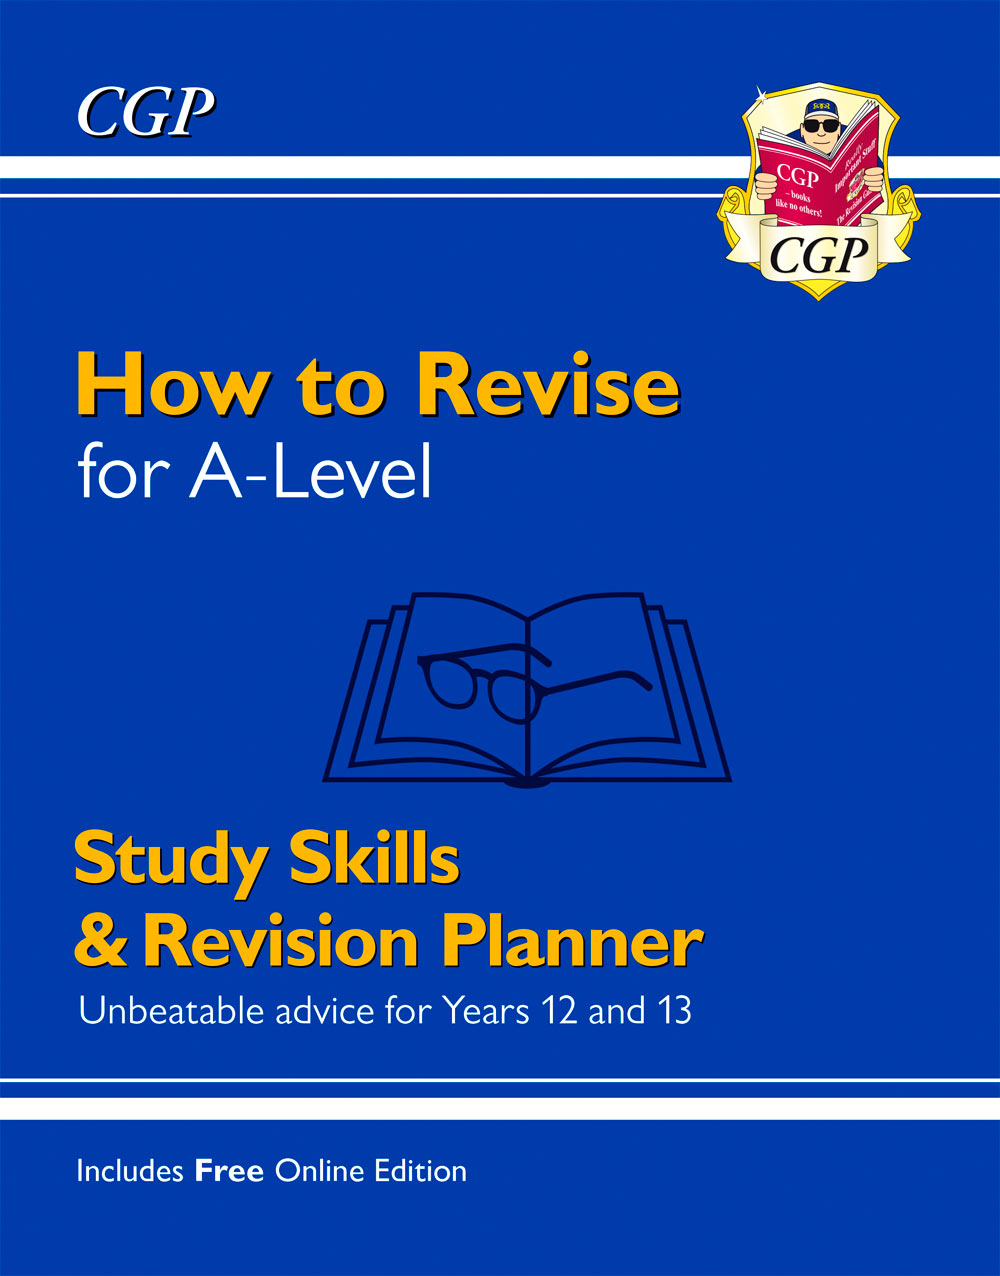 XHR71 - How to Revise for A-Level: Study Skills & Planner (inc Online Edition)